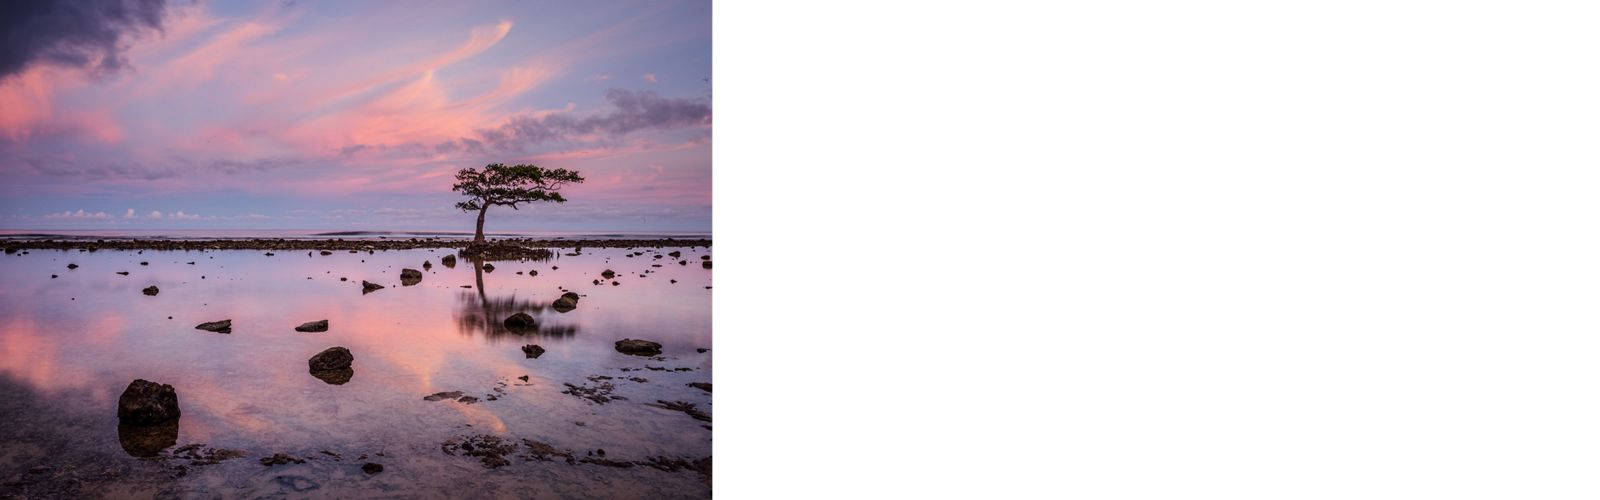 A lone mangrove tree silhouetted against the pastel colors of an evening sky interru the horizon on the inner reef near the village of Utwe on Kosrae island, Micronesia.